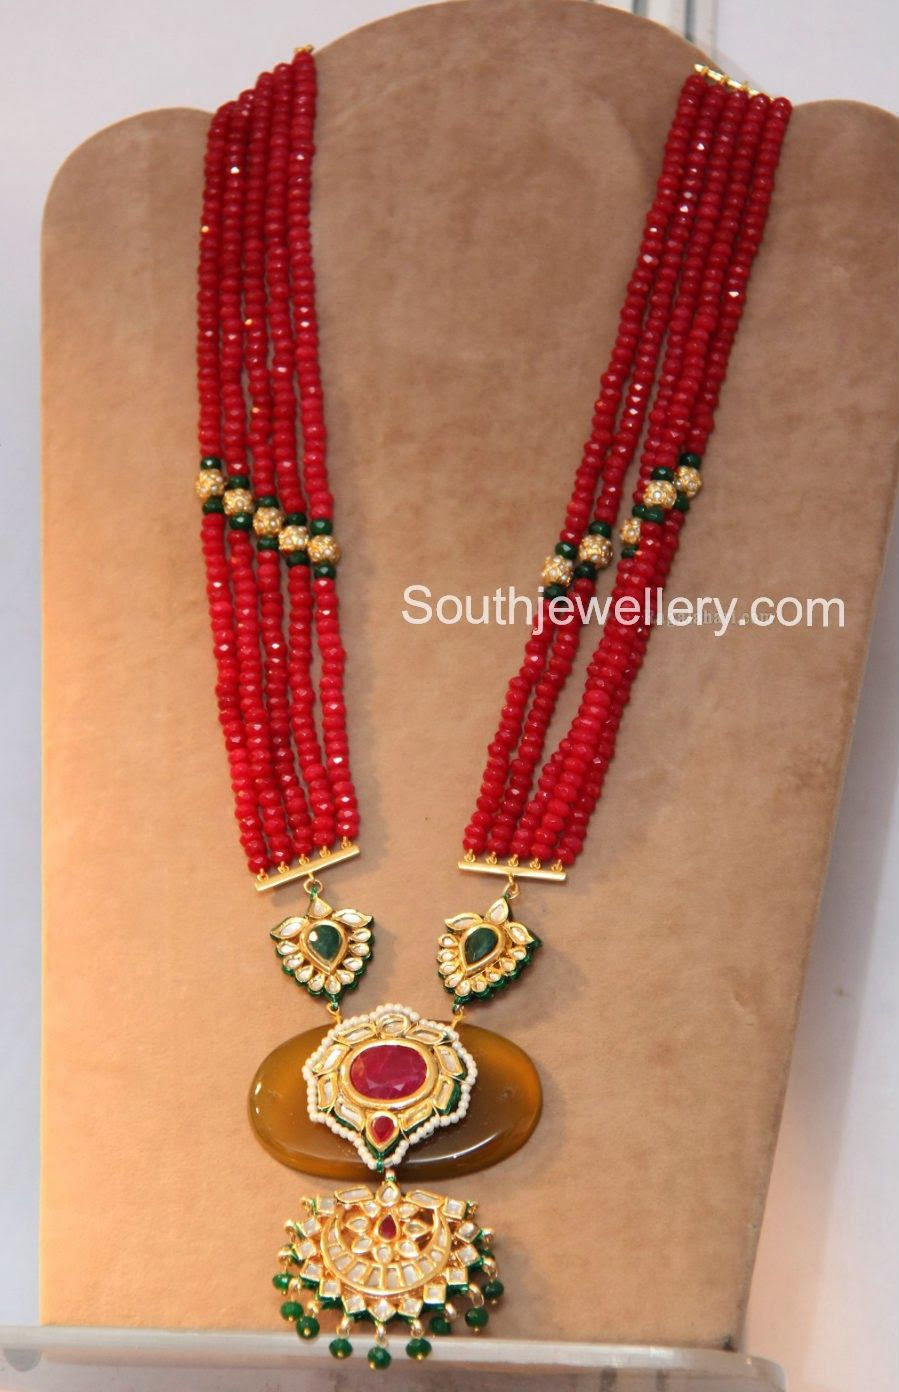 Trendy beads fashion necklace designs with colorful beads related trendy beads fashion necklace designs with colorful beads related postslavender pachi pendant necklace setpinky reddy aloadofball Choice Image